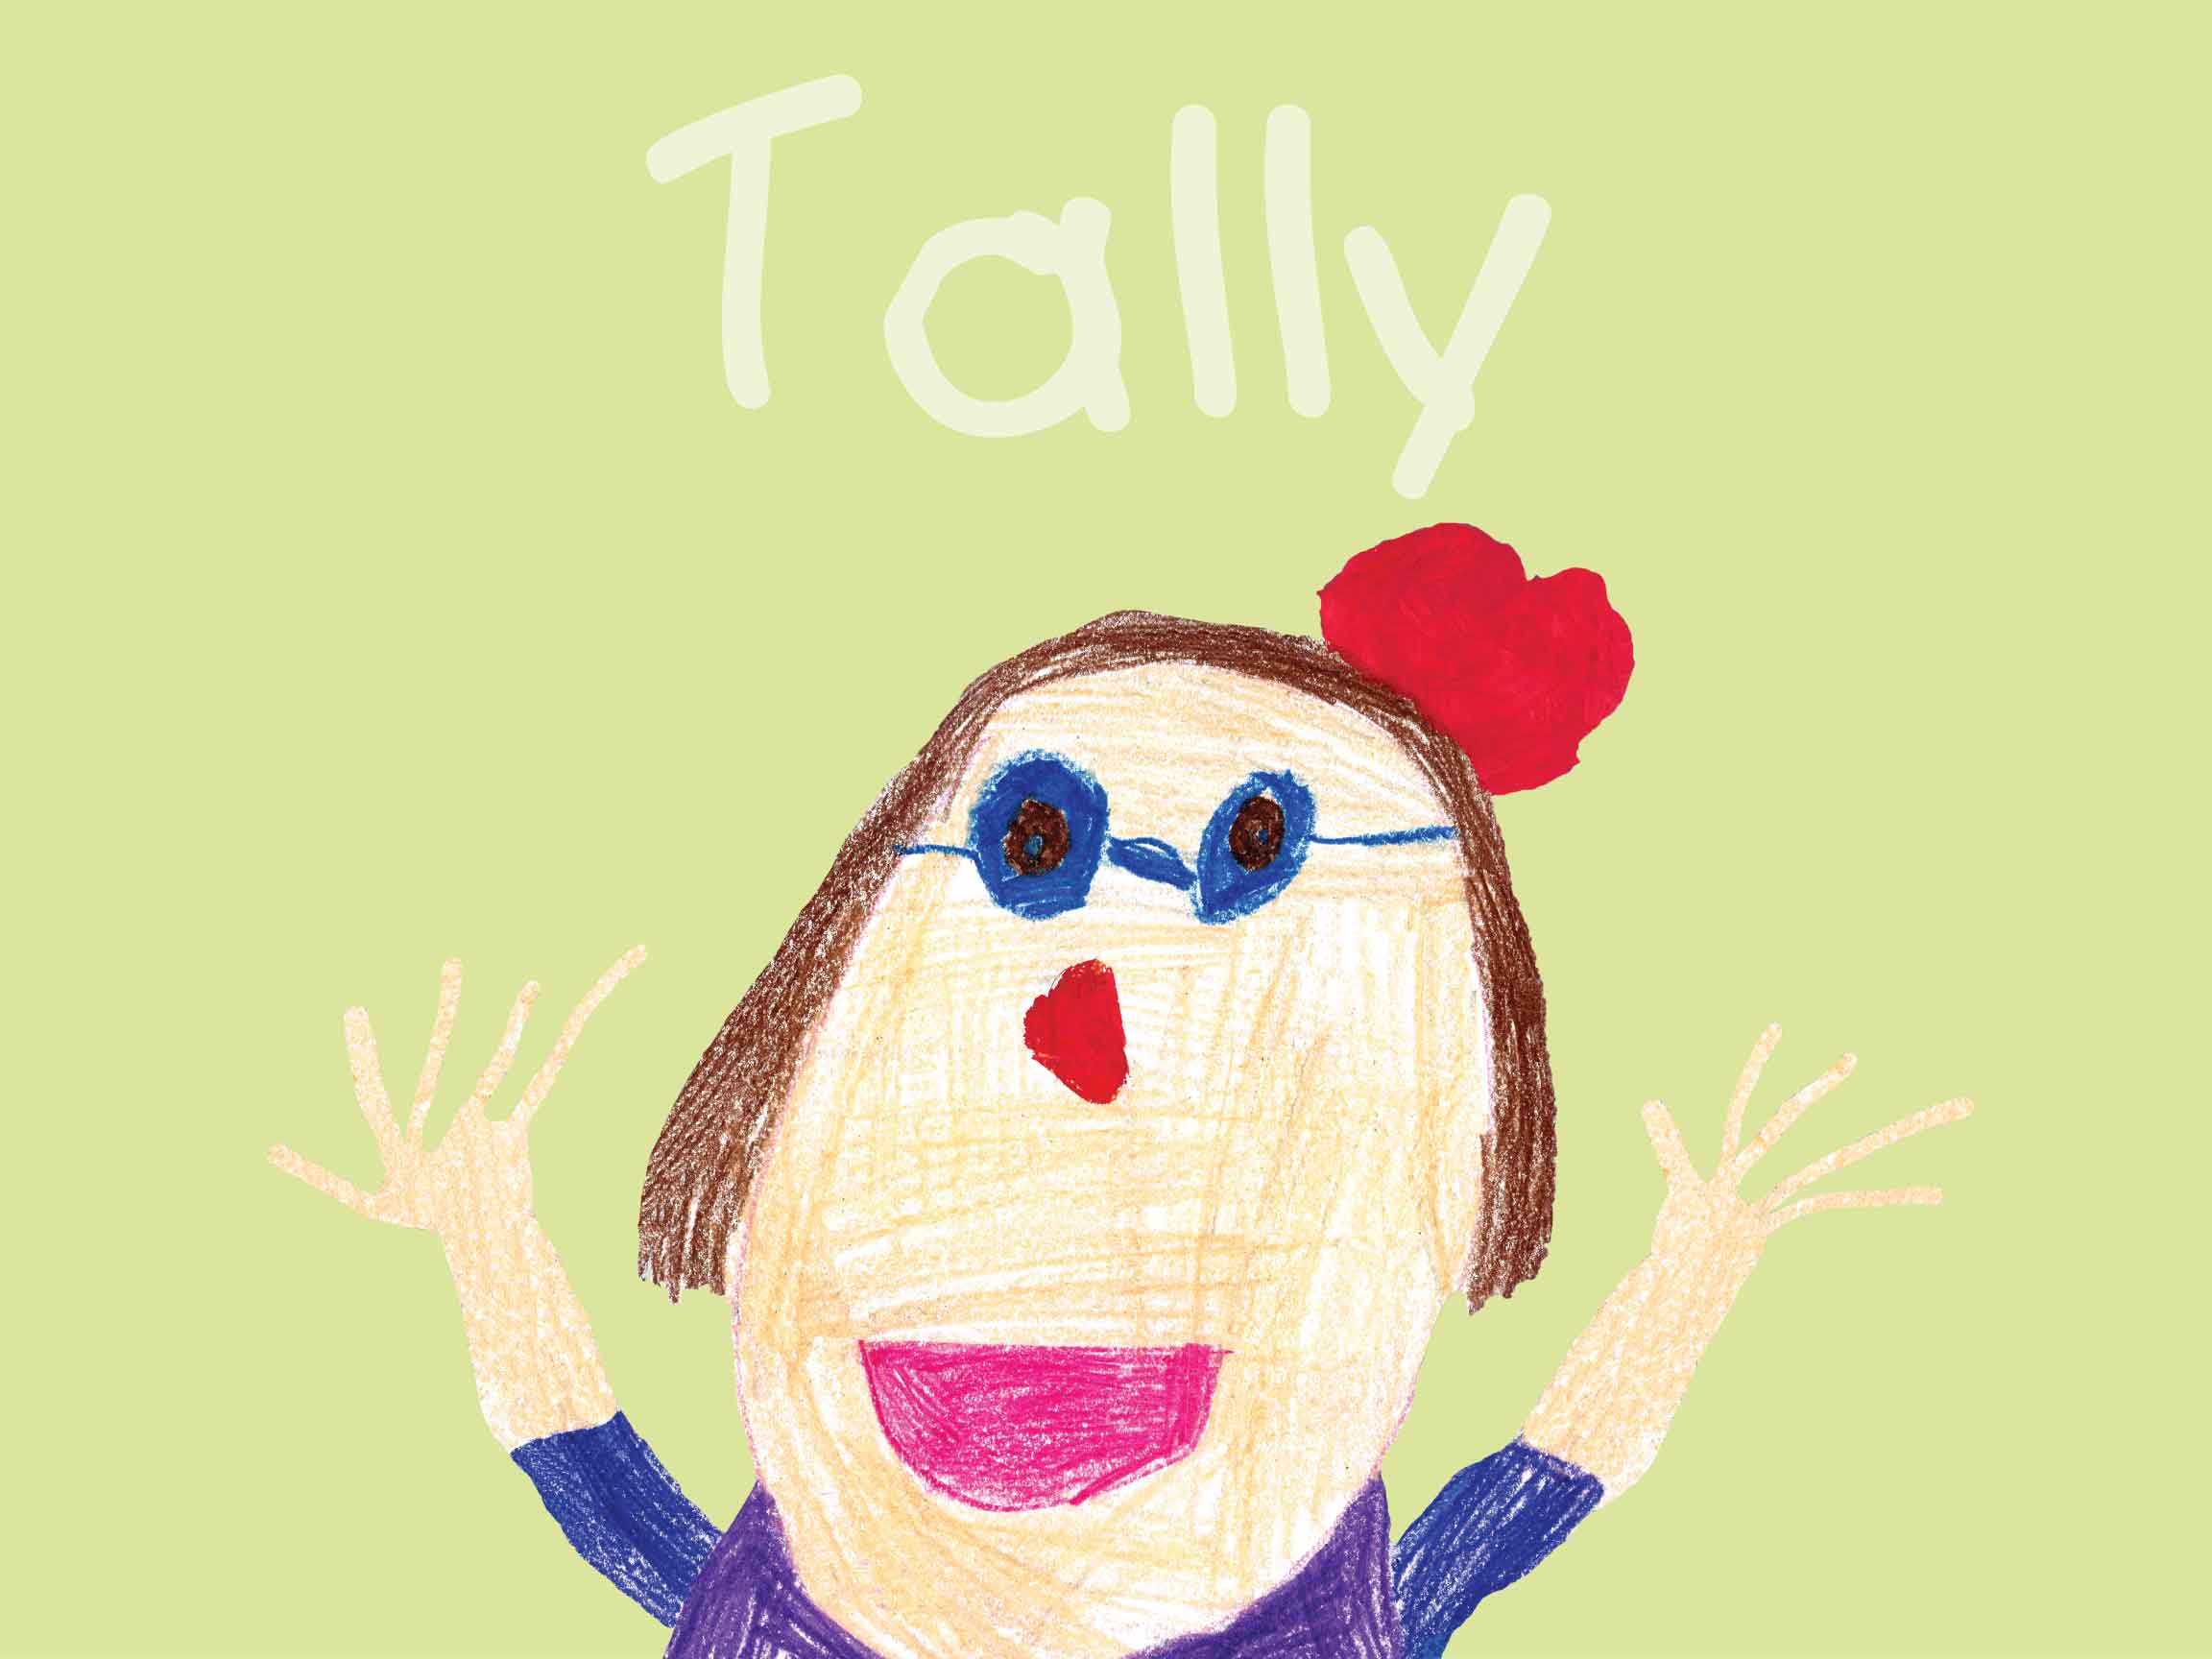 Tally-Self-portrait-ILMKA